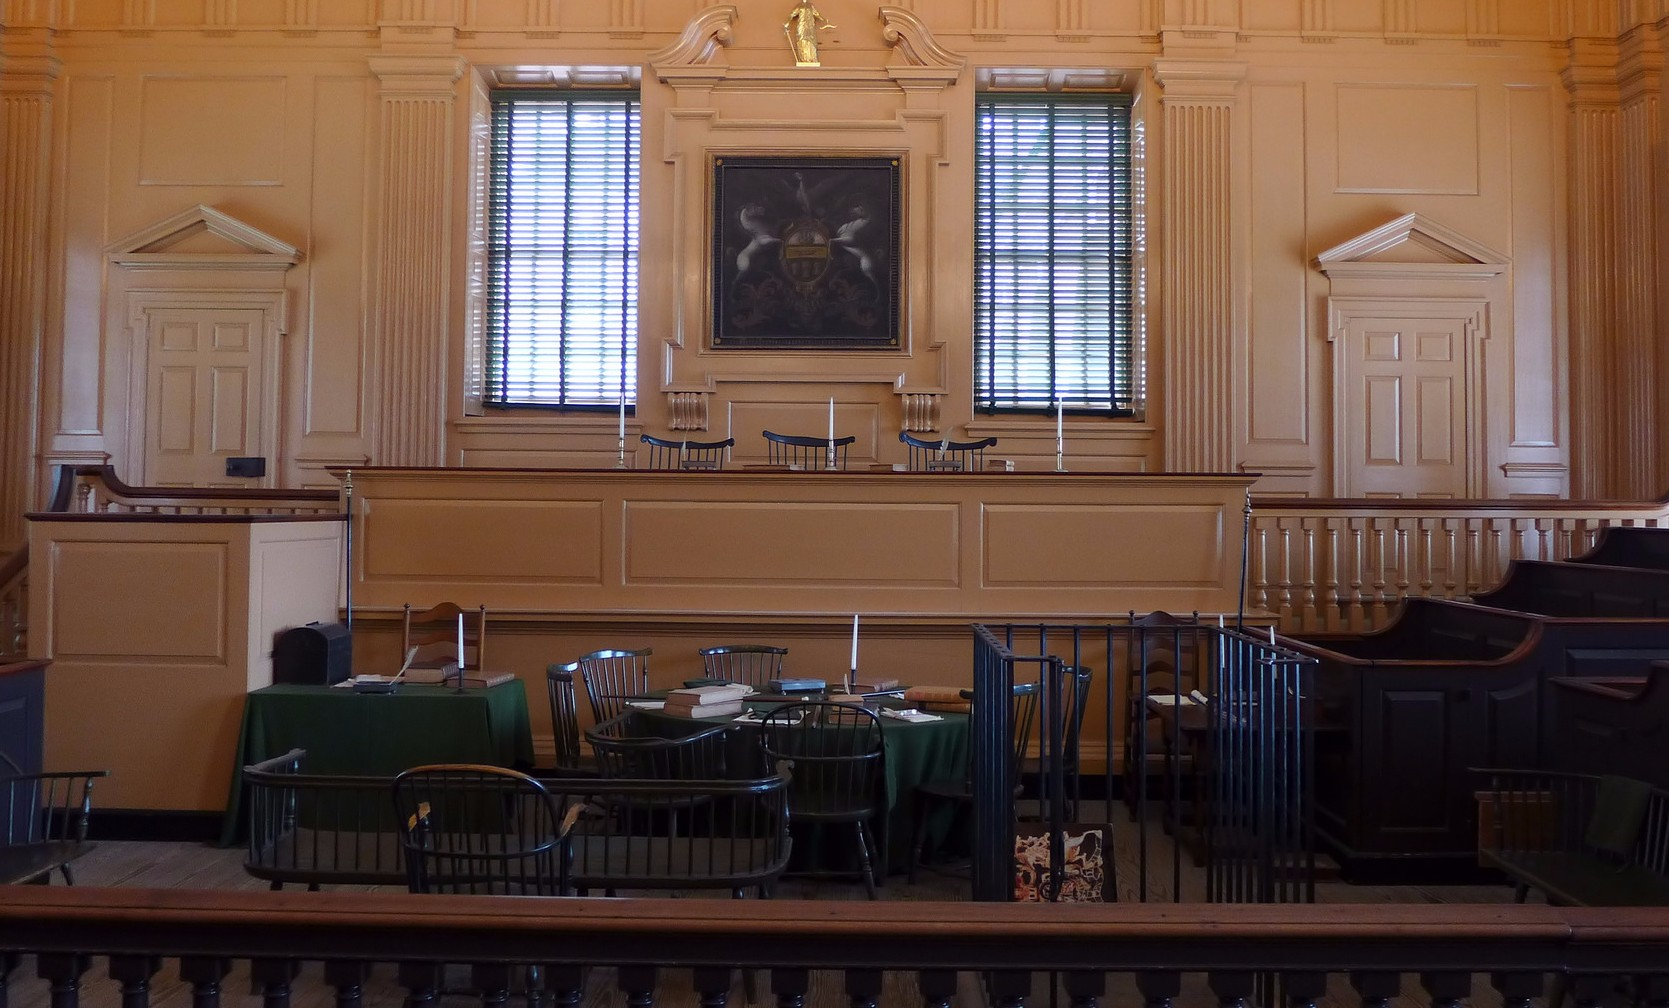 Court, lawyer, attorney - courtroom with benches, tables and chairs